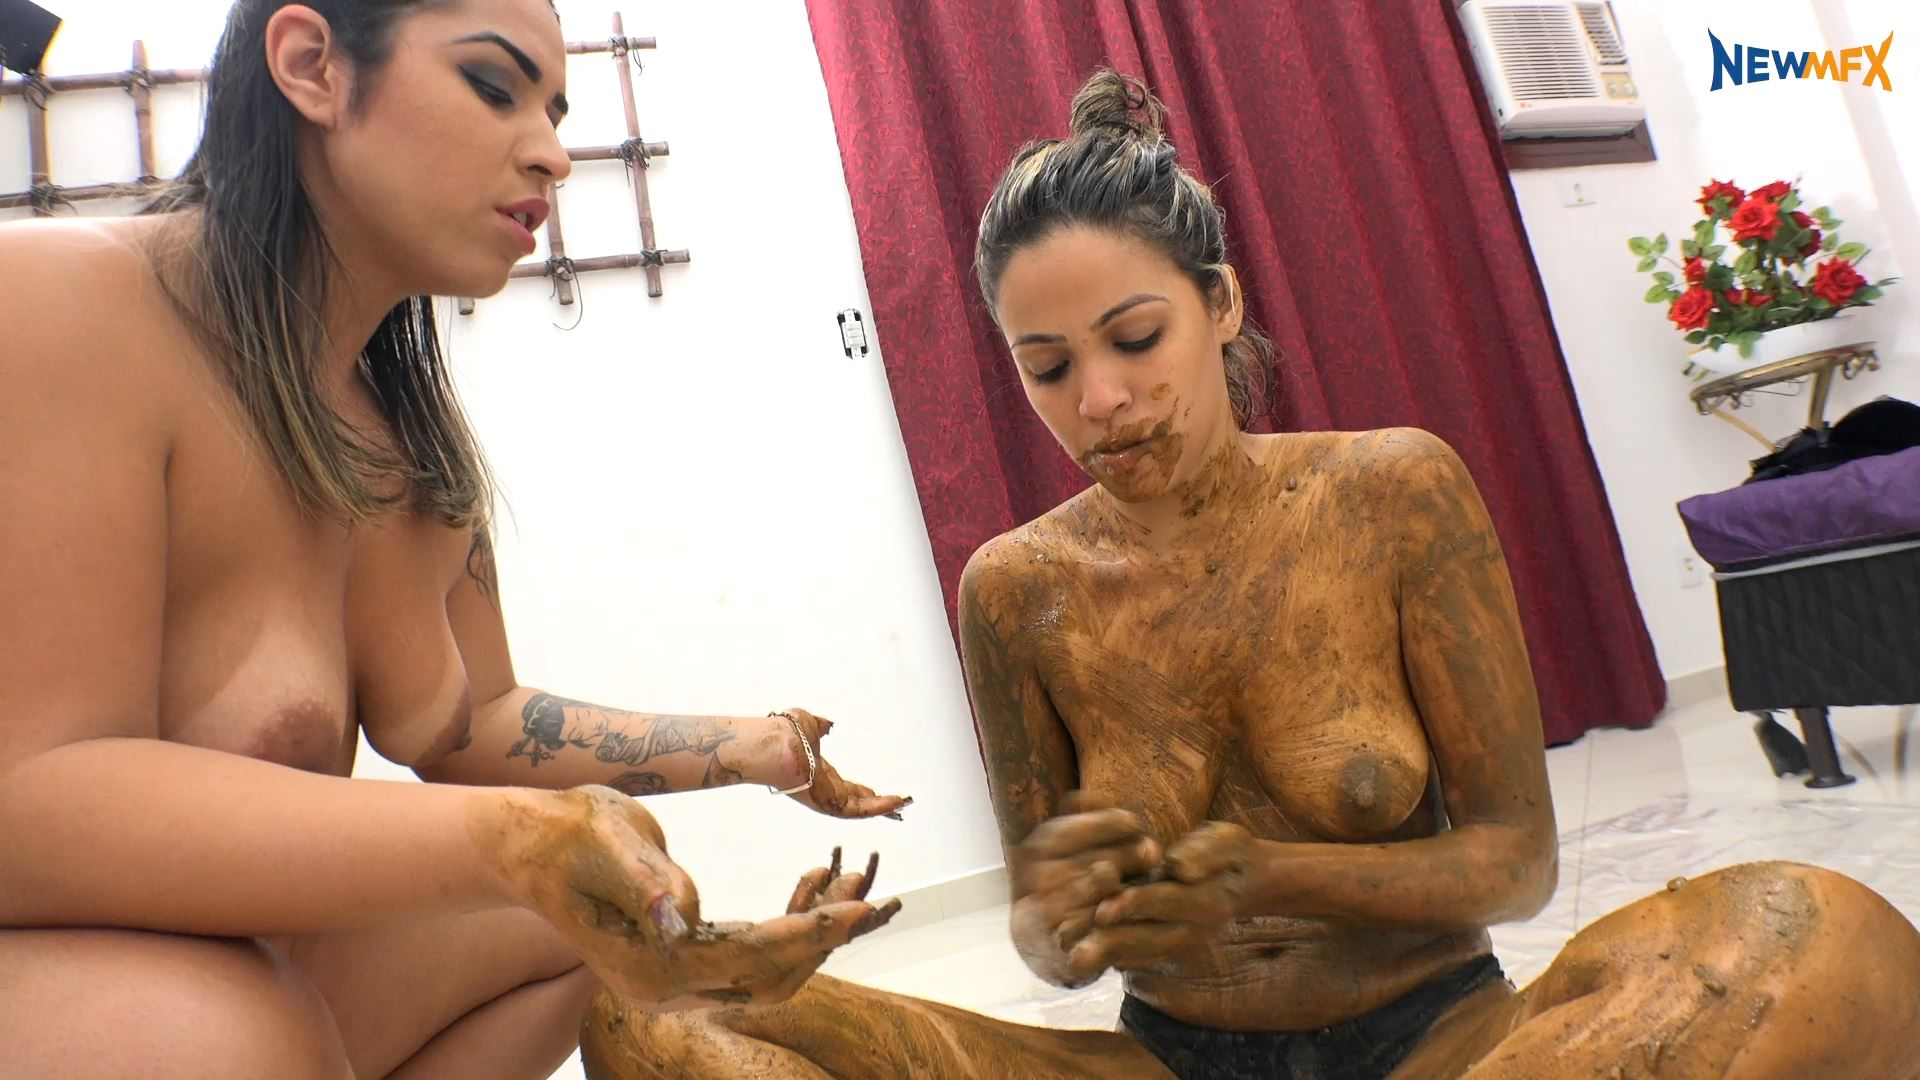 [NEW SCAT IN BRAZIL / NEWMFX] THE SLAVE'S WISHES. Featuring: Jaqueline, Victoria [FULL HD][1080p][MP4]